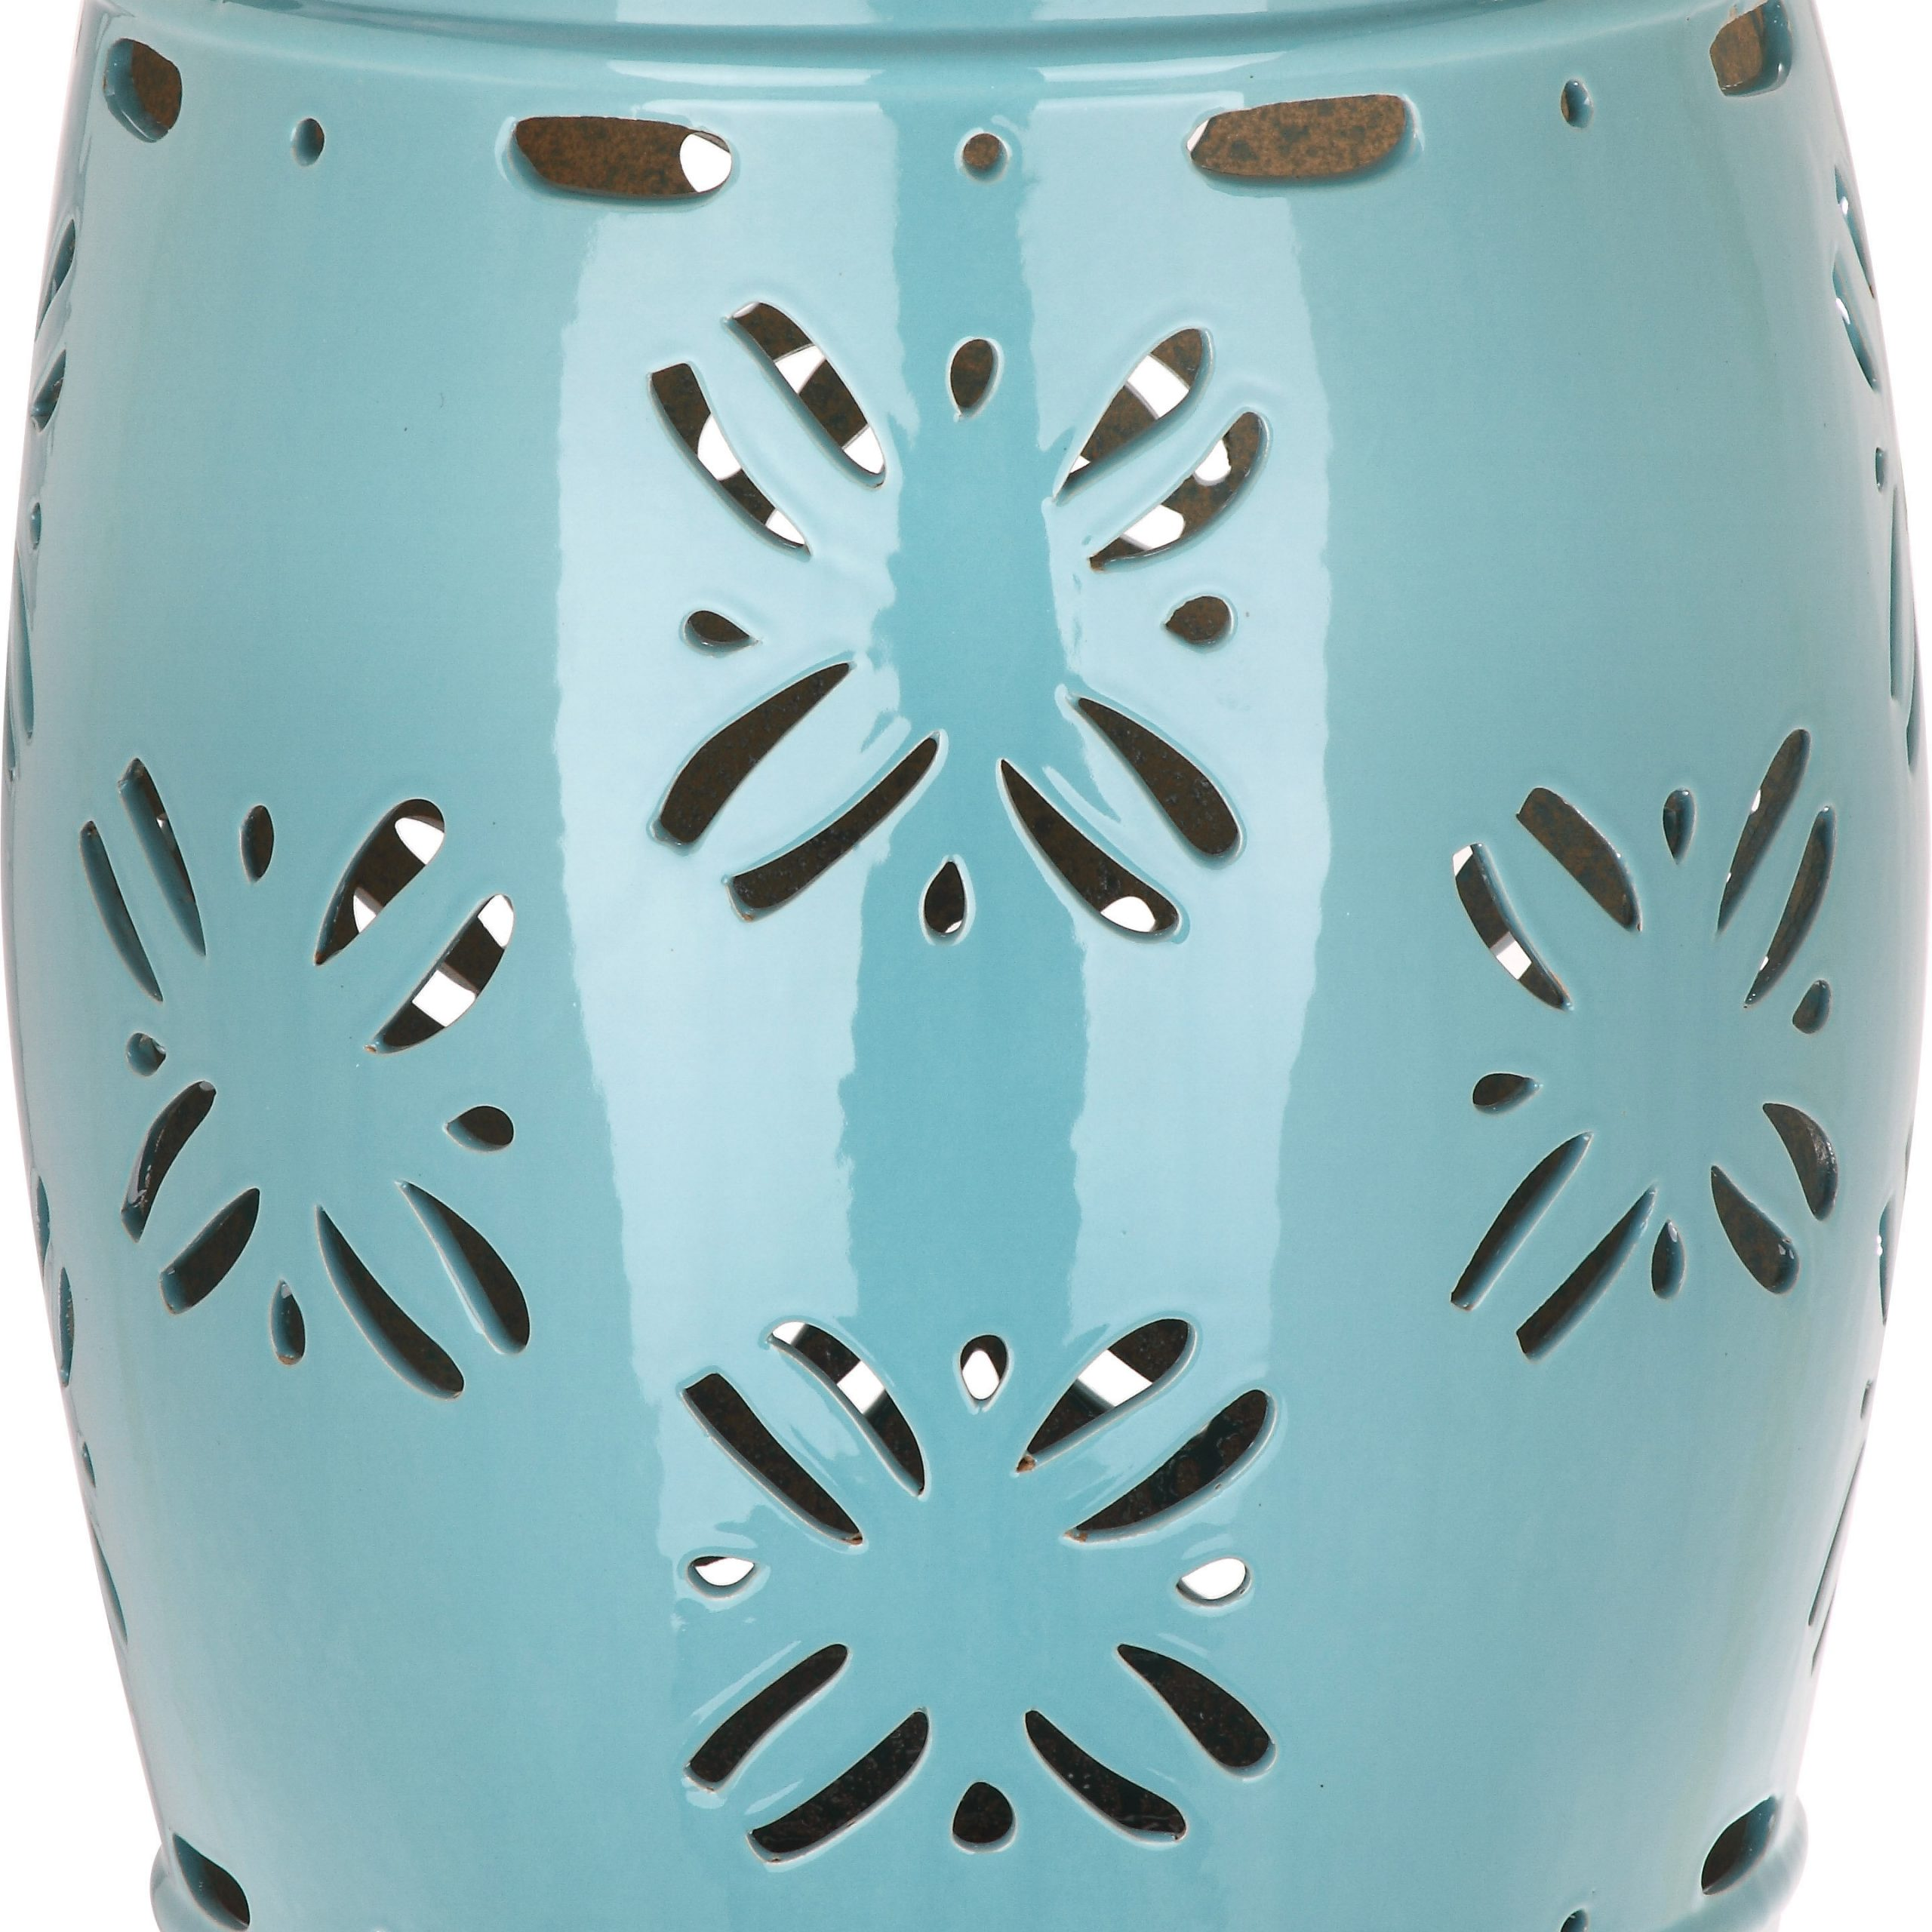 Ceramic Garden Accent Stools You'll Love In (View 8 of 30)